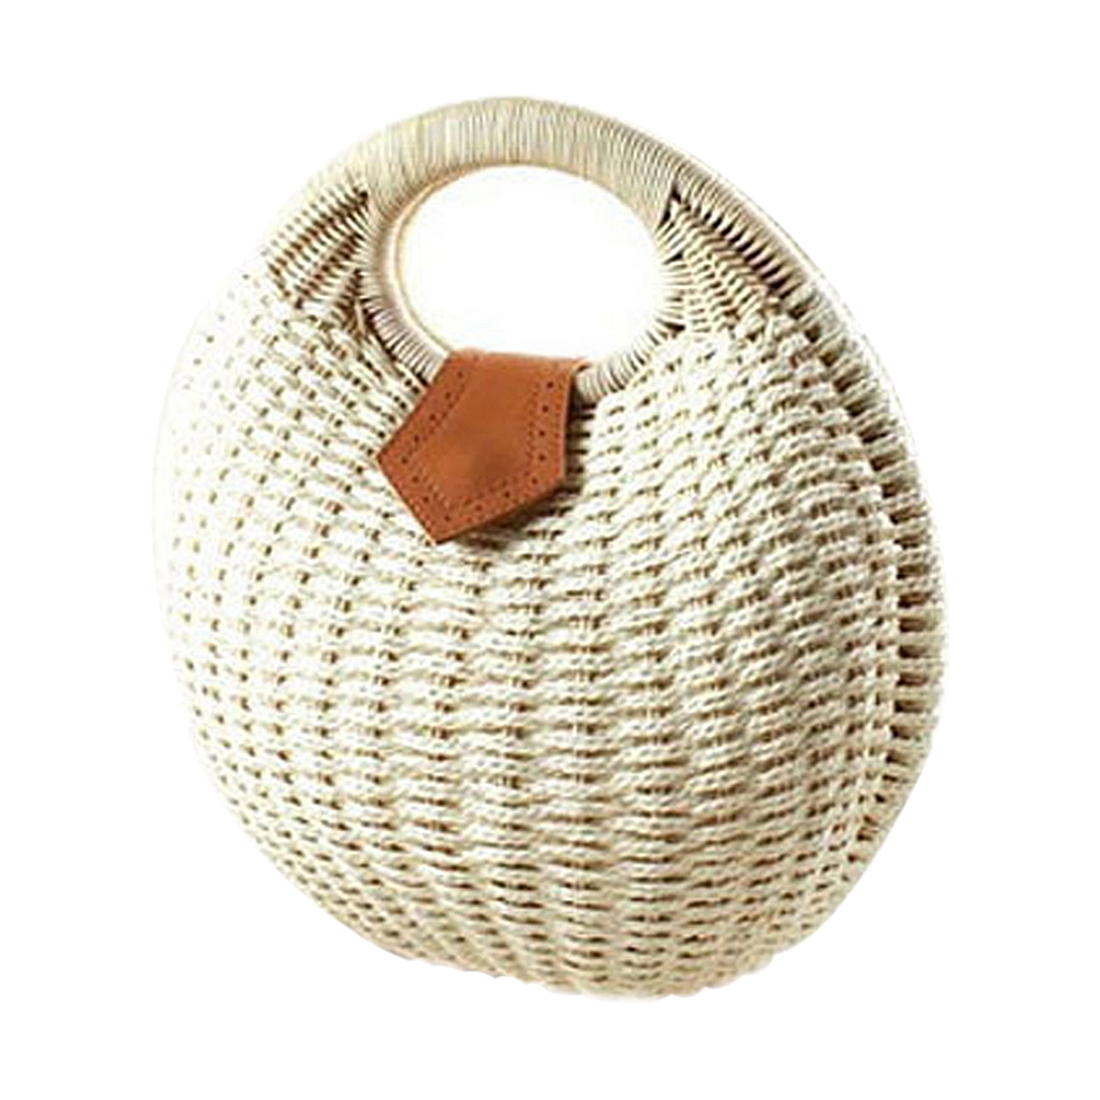 Snails Nest Tote Handbag Summer Beach Bags Woman Straw Bags Womens Handbag Rattan BagSnails Nest Tote Handbag Summer Beach Bags Woman Straw Bags Womens Handbag Rattan Bag